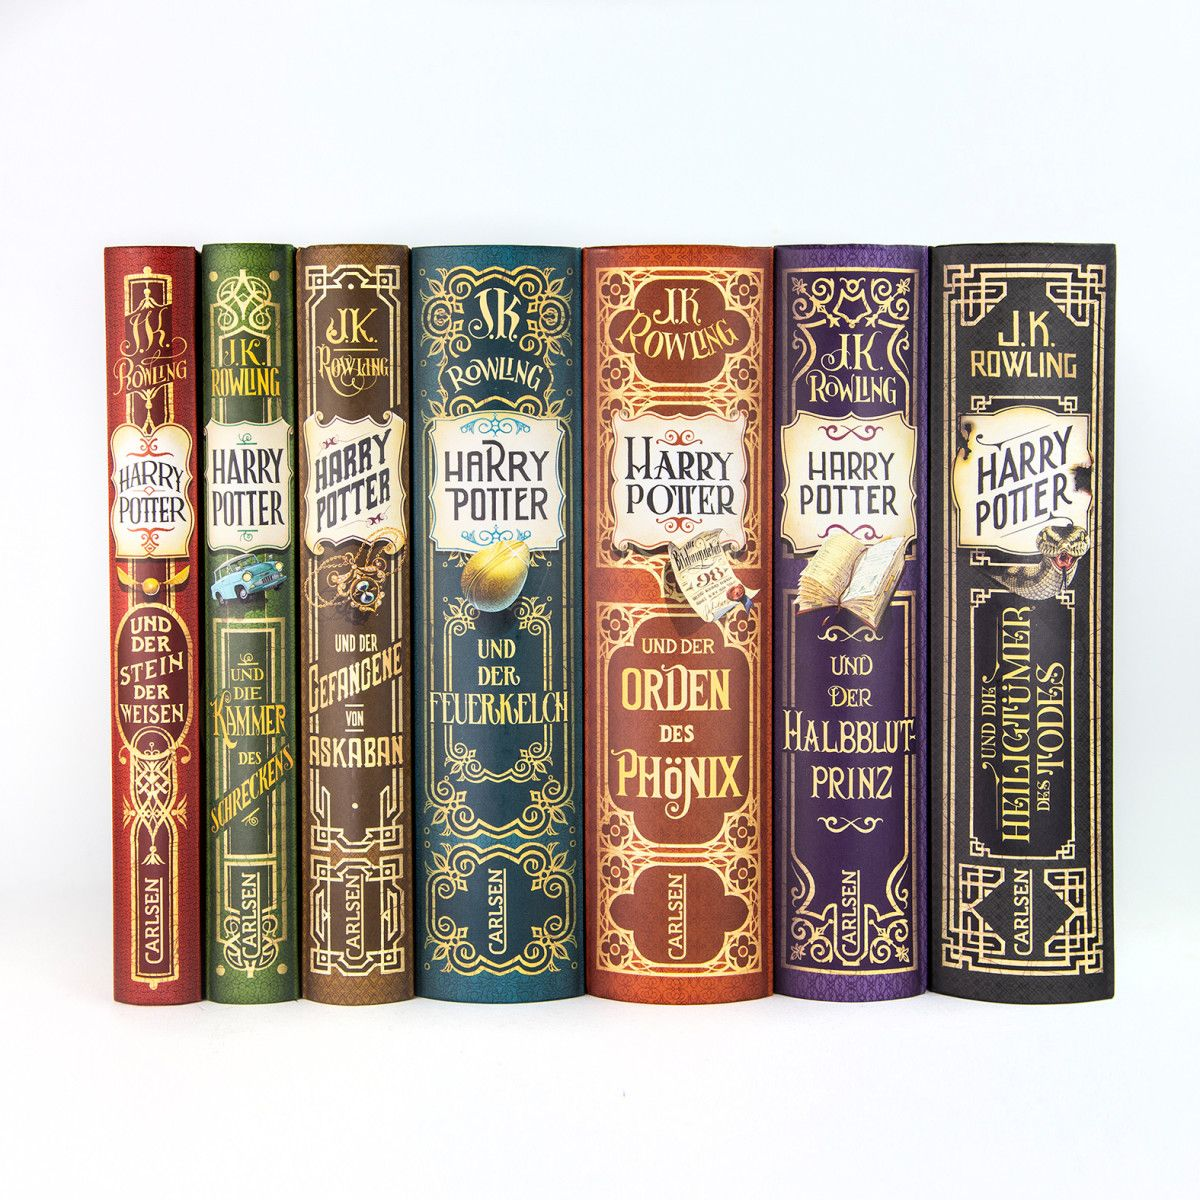 Behind the german 20th anniversary editions of the harry